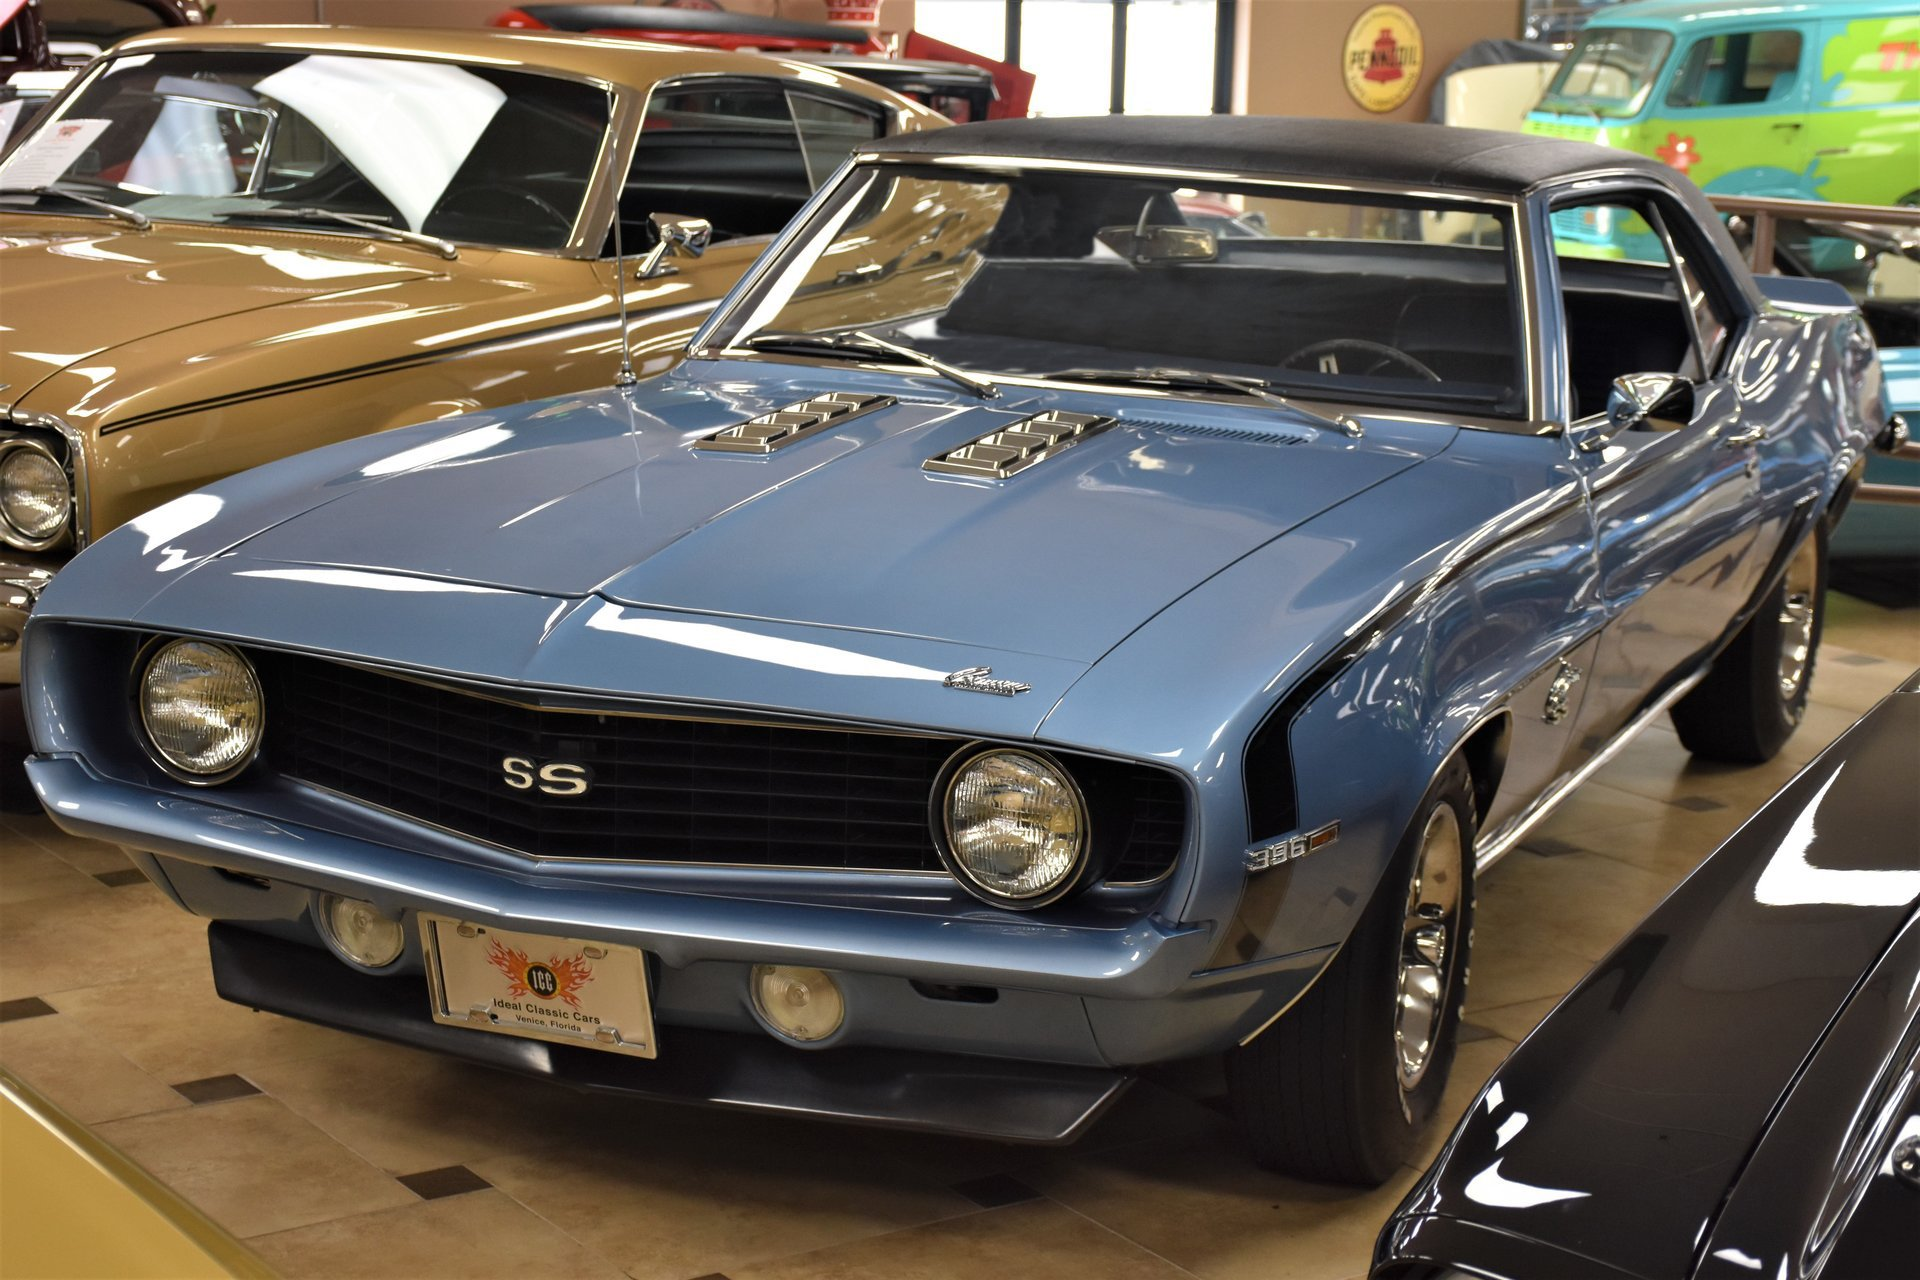 1969 Chevrolet Camaro Ideal Classic Cars Llc